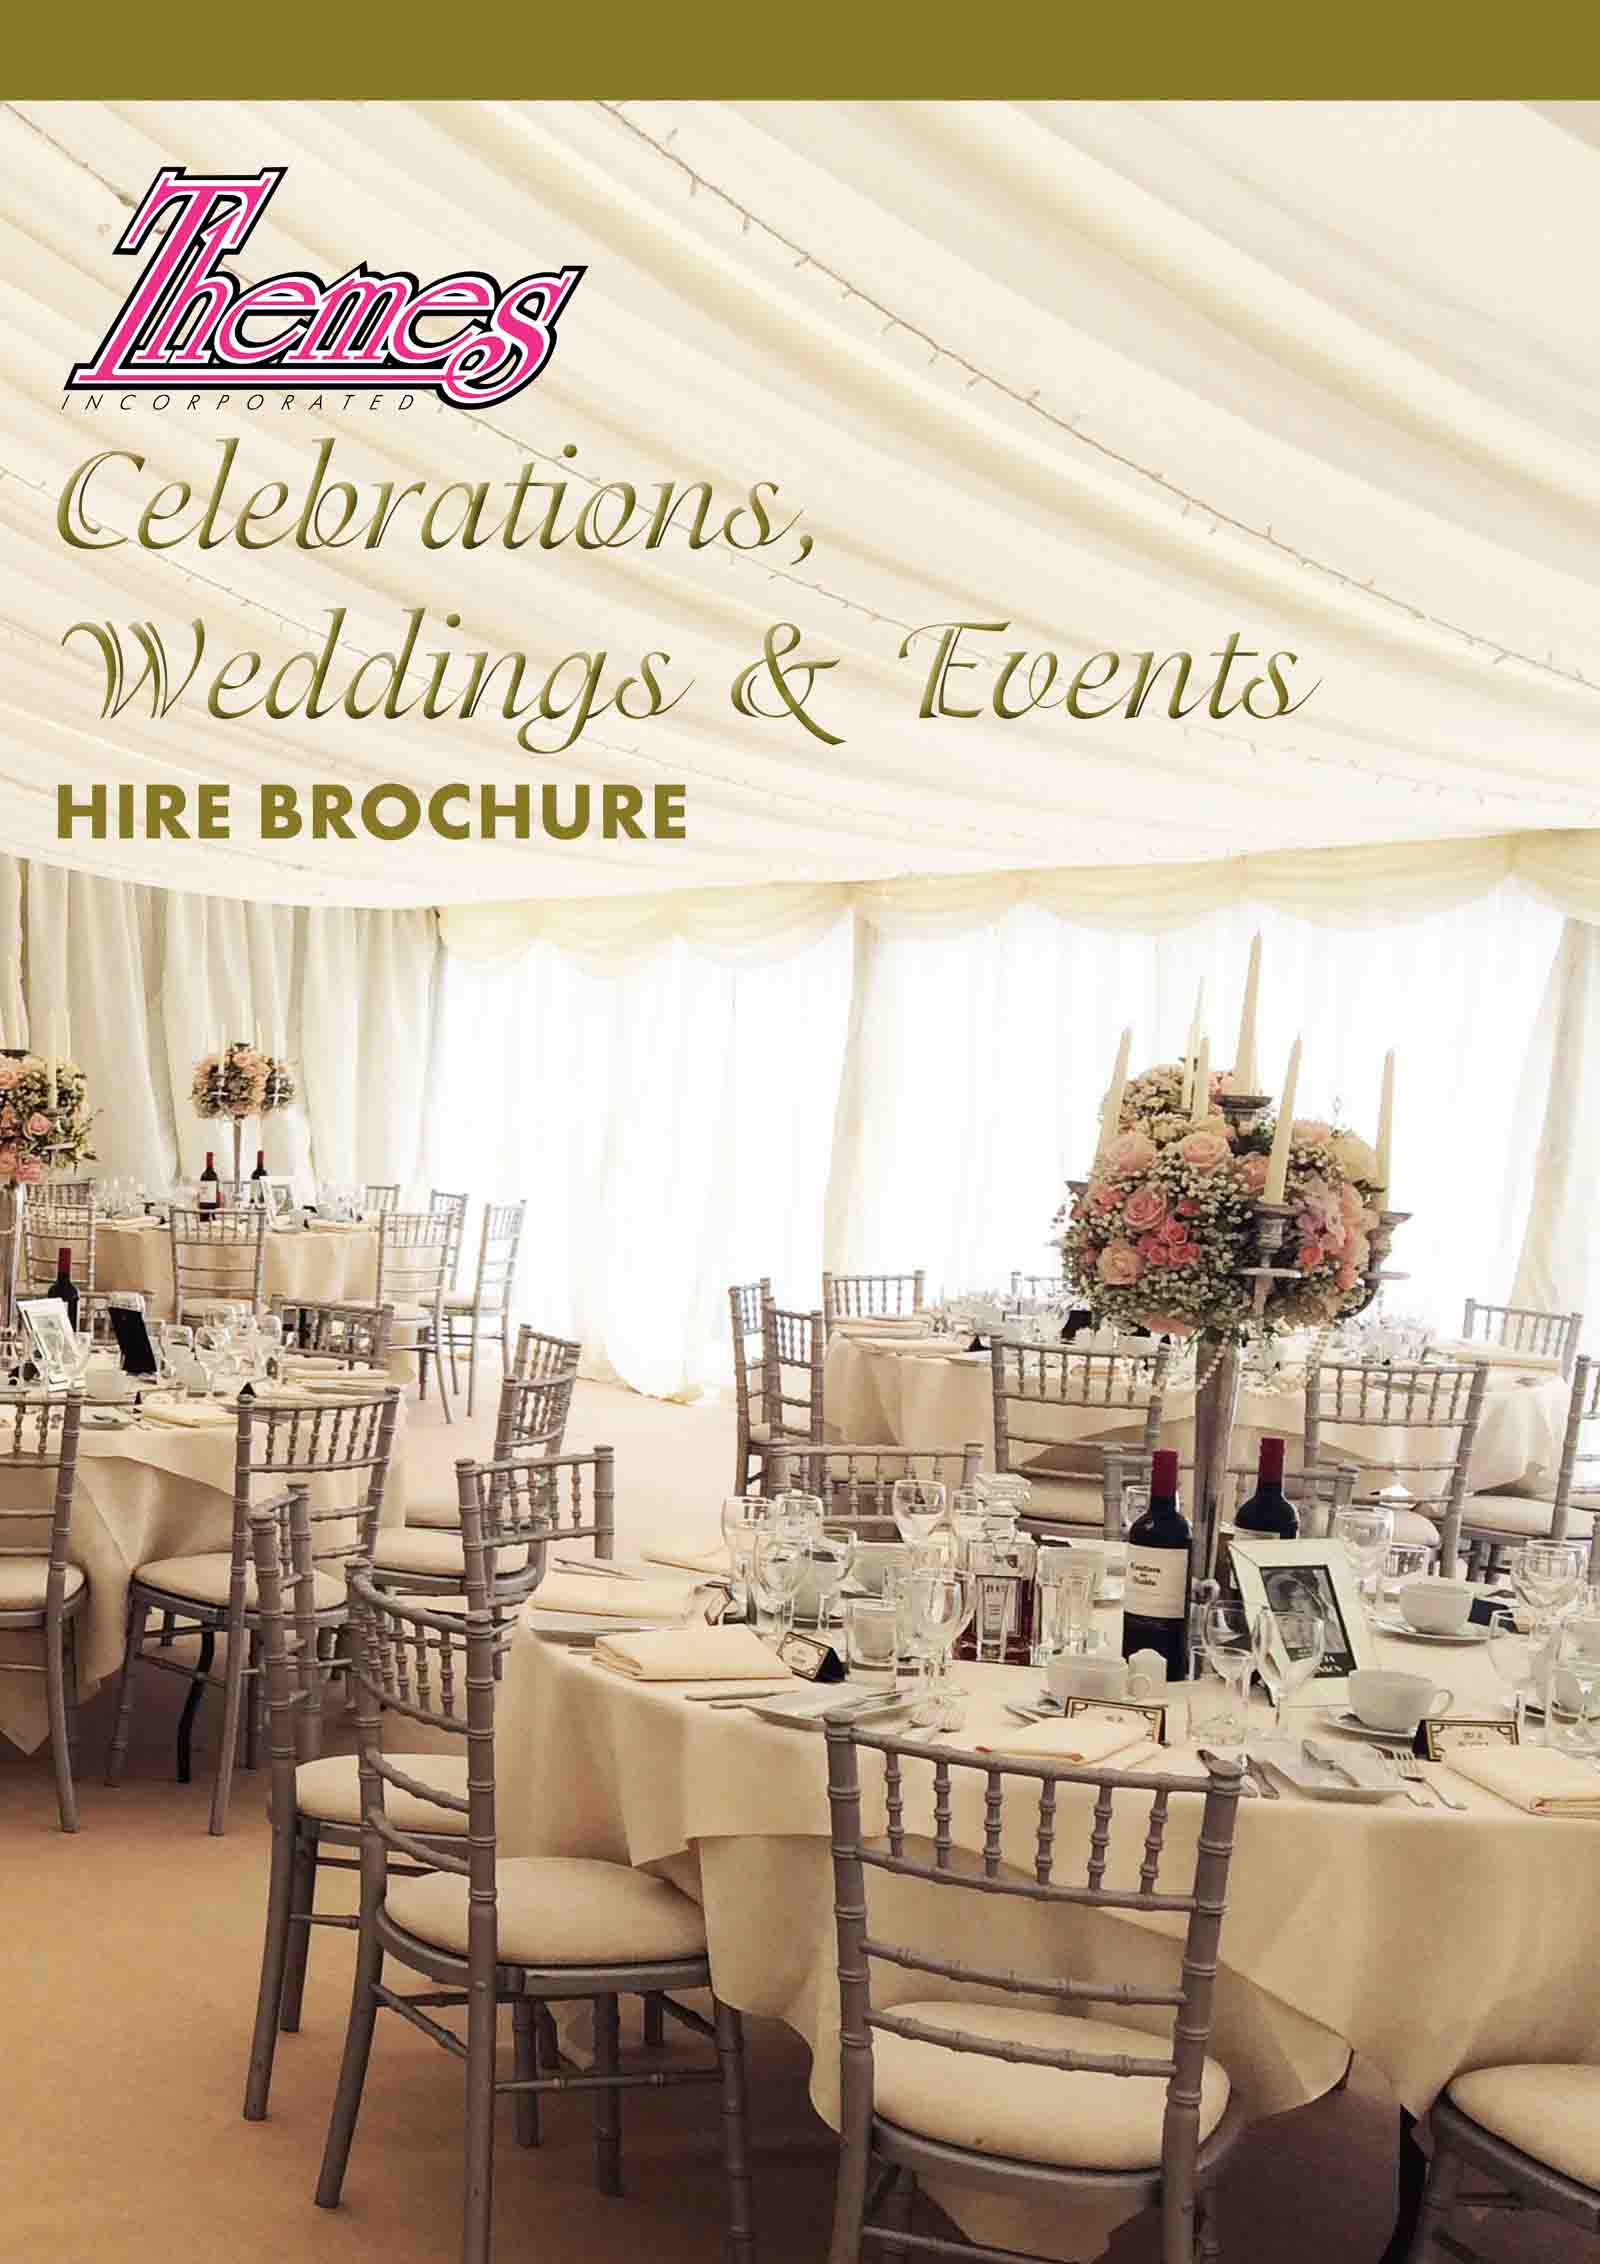 CELEBRATIONS, WEDDINGS & EVENTS BROCHURE